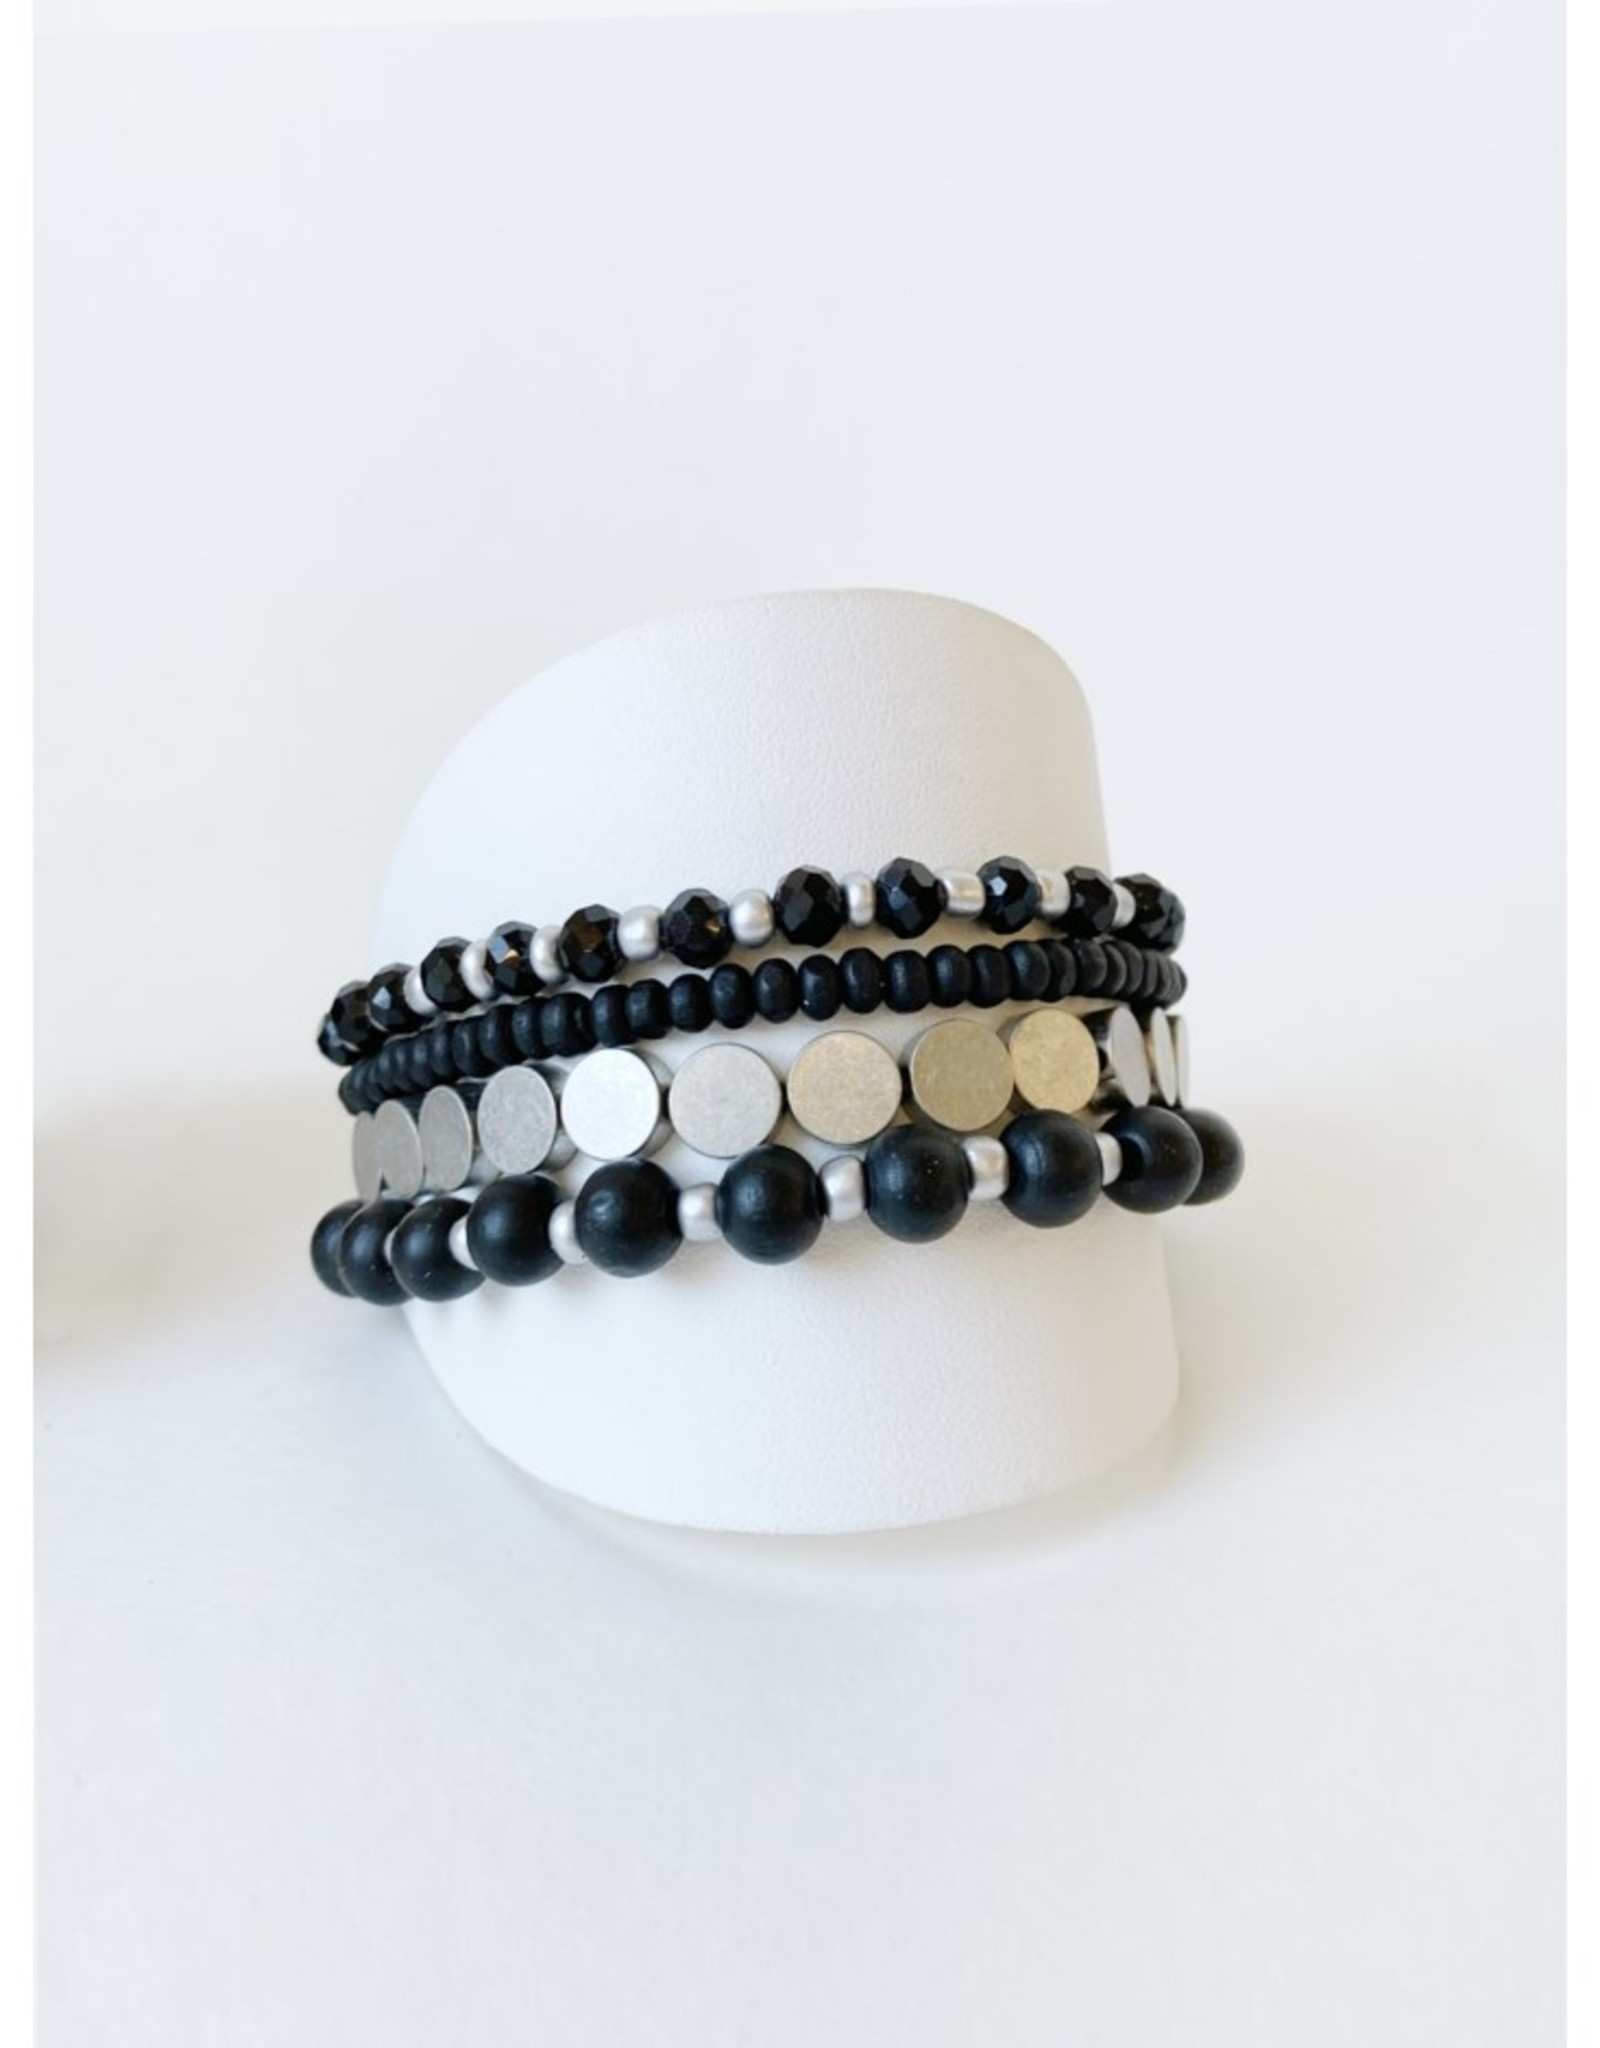 Set of 4 Bracelets with Wood and Metal Beads-black/silver